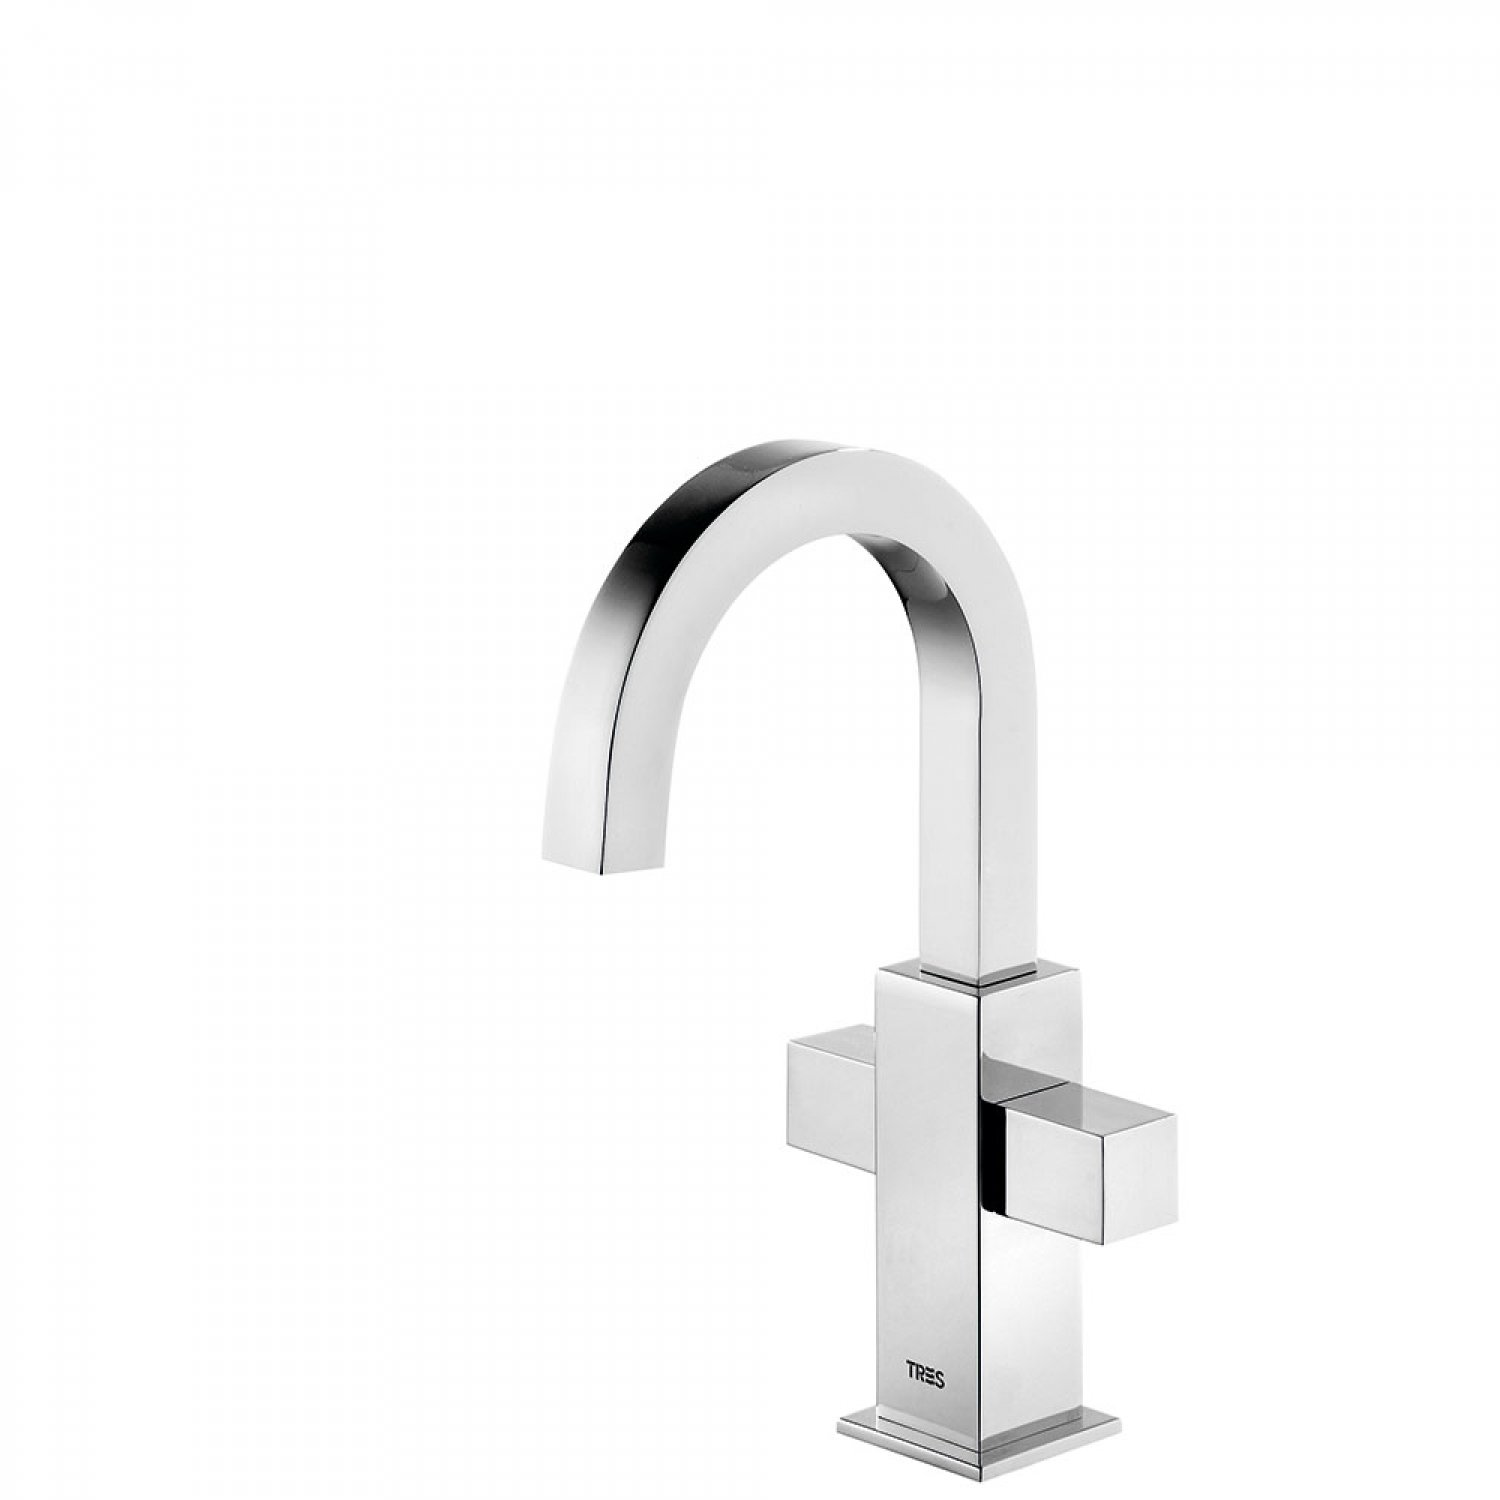 http://desidea.hu/wp-content/uploads/2019/07/Single-lever-washbasin-mixer-108605.jpg